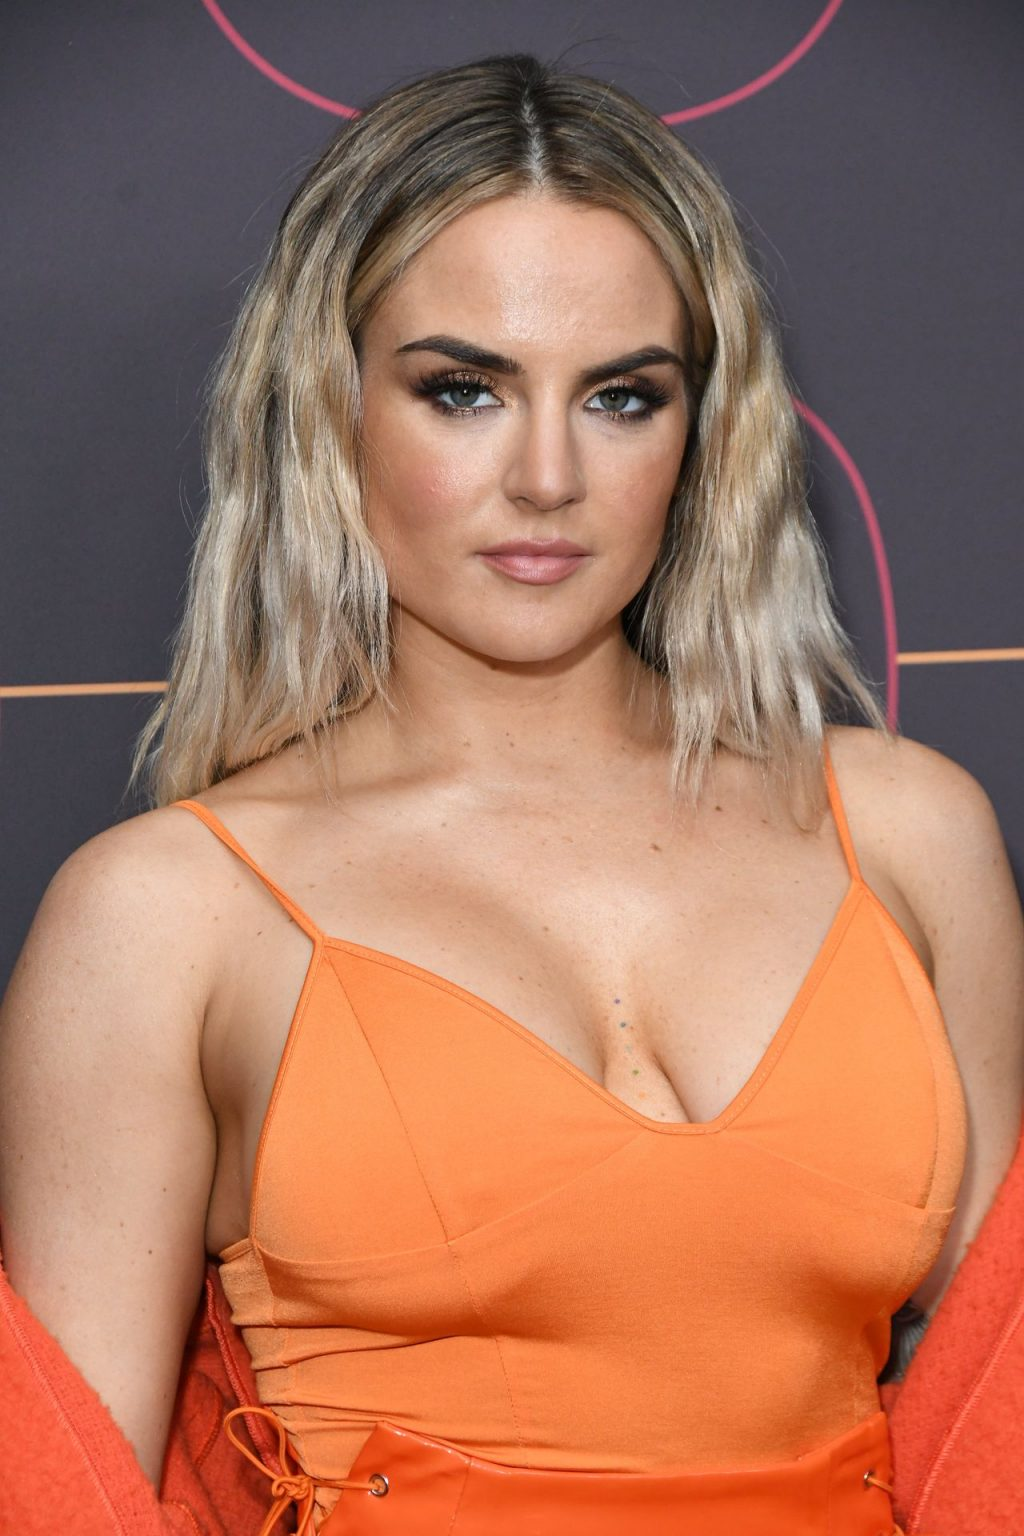 JoJo Shows Off Her Tits at the Warner Music Group Pre-Grammy Party in Hollywood (39 Photos)